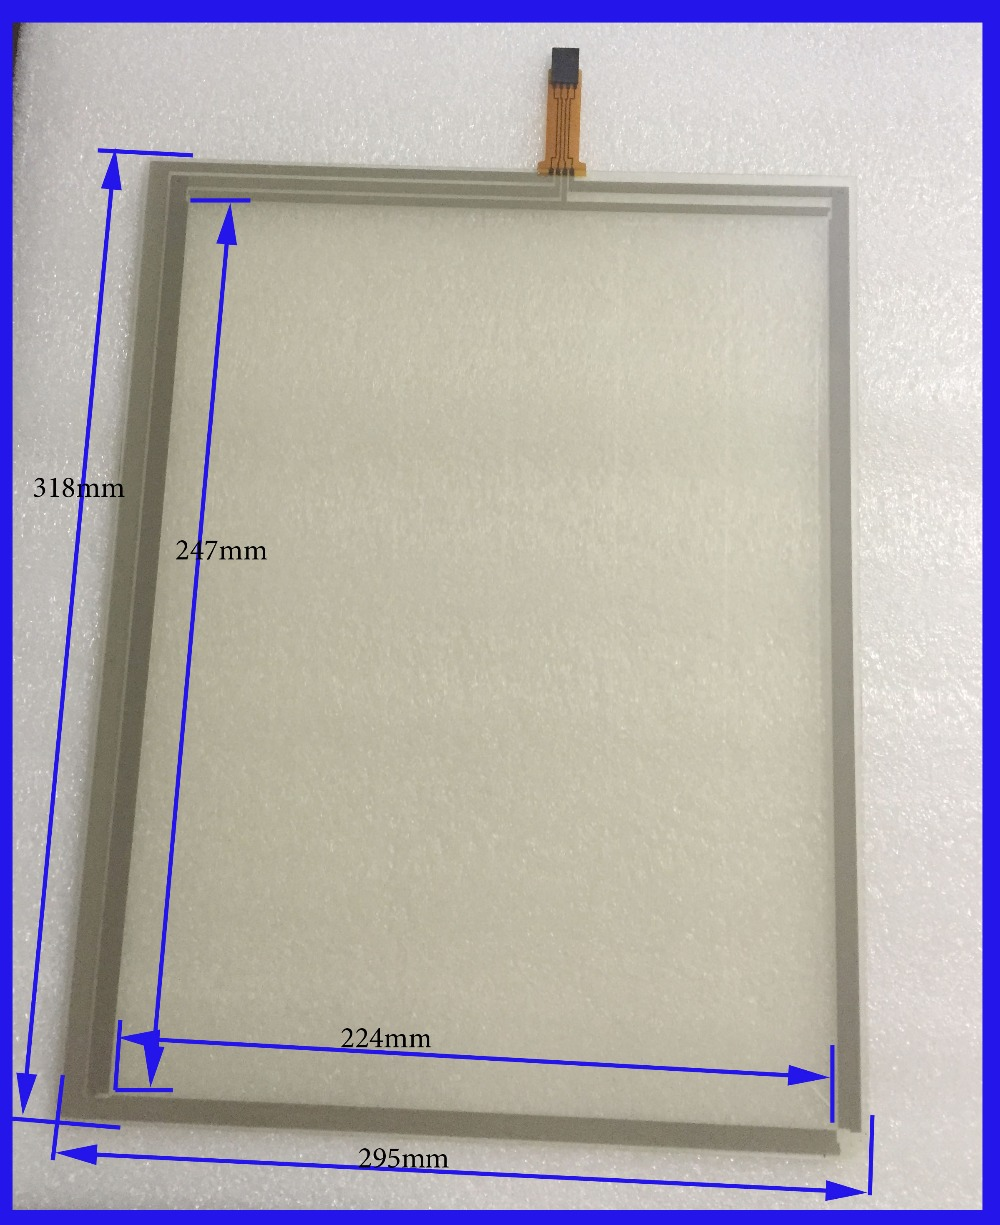 ZhiYuSun 318mm*247mm 14 Inch Touch Screen panels 4 wire resistive USB touch panel overlay kit  Free Shipping zhiyusun new 10 4 inch touch screen 4 wire resistive usb touch panel overlay kit free shipping 225 173